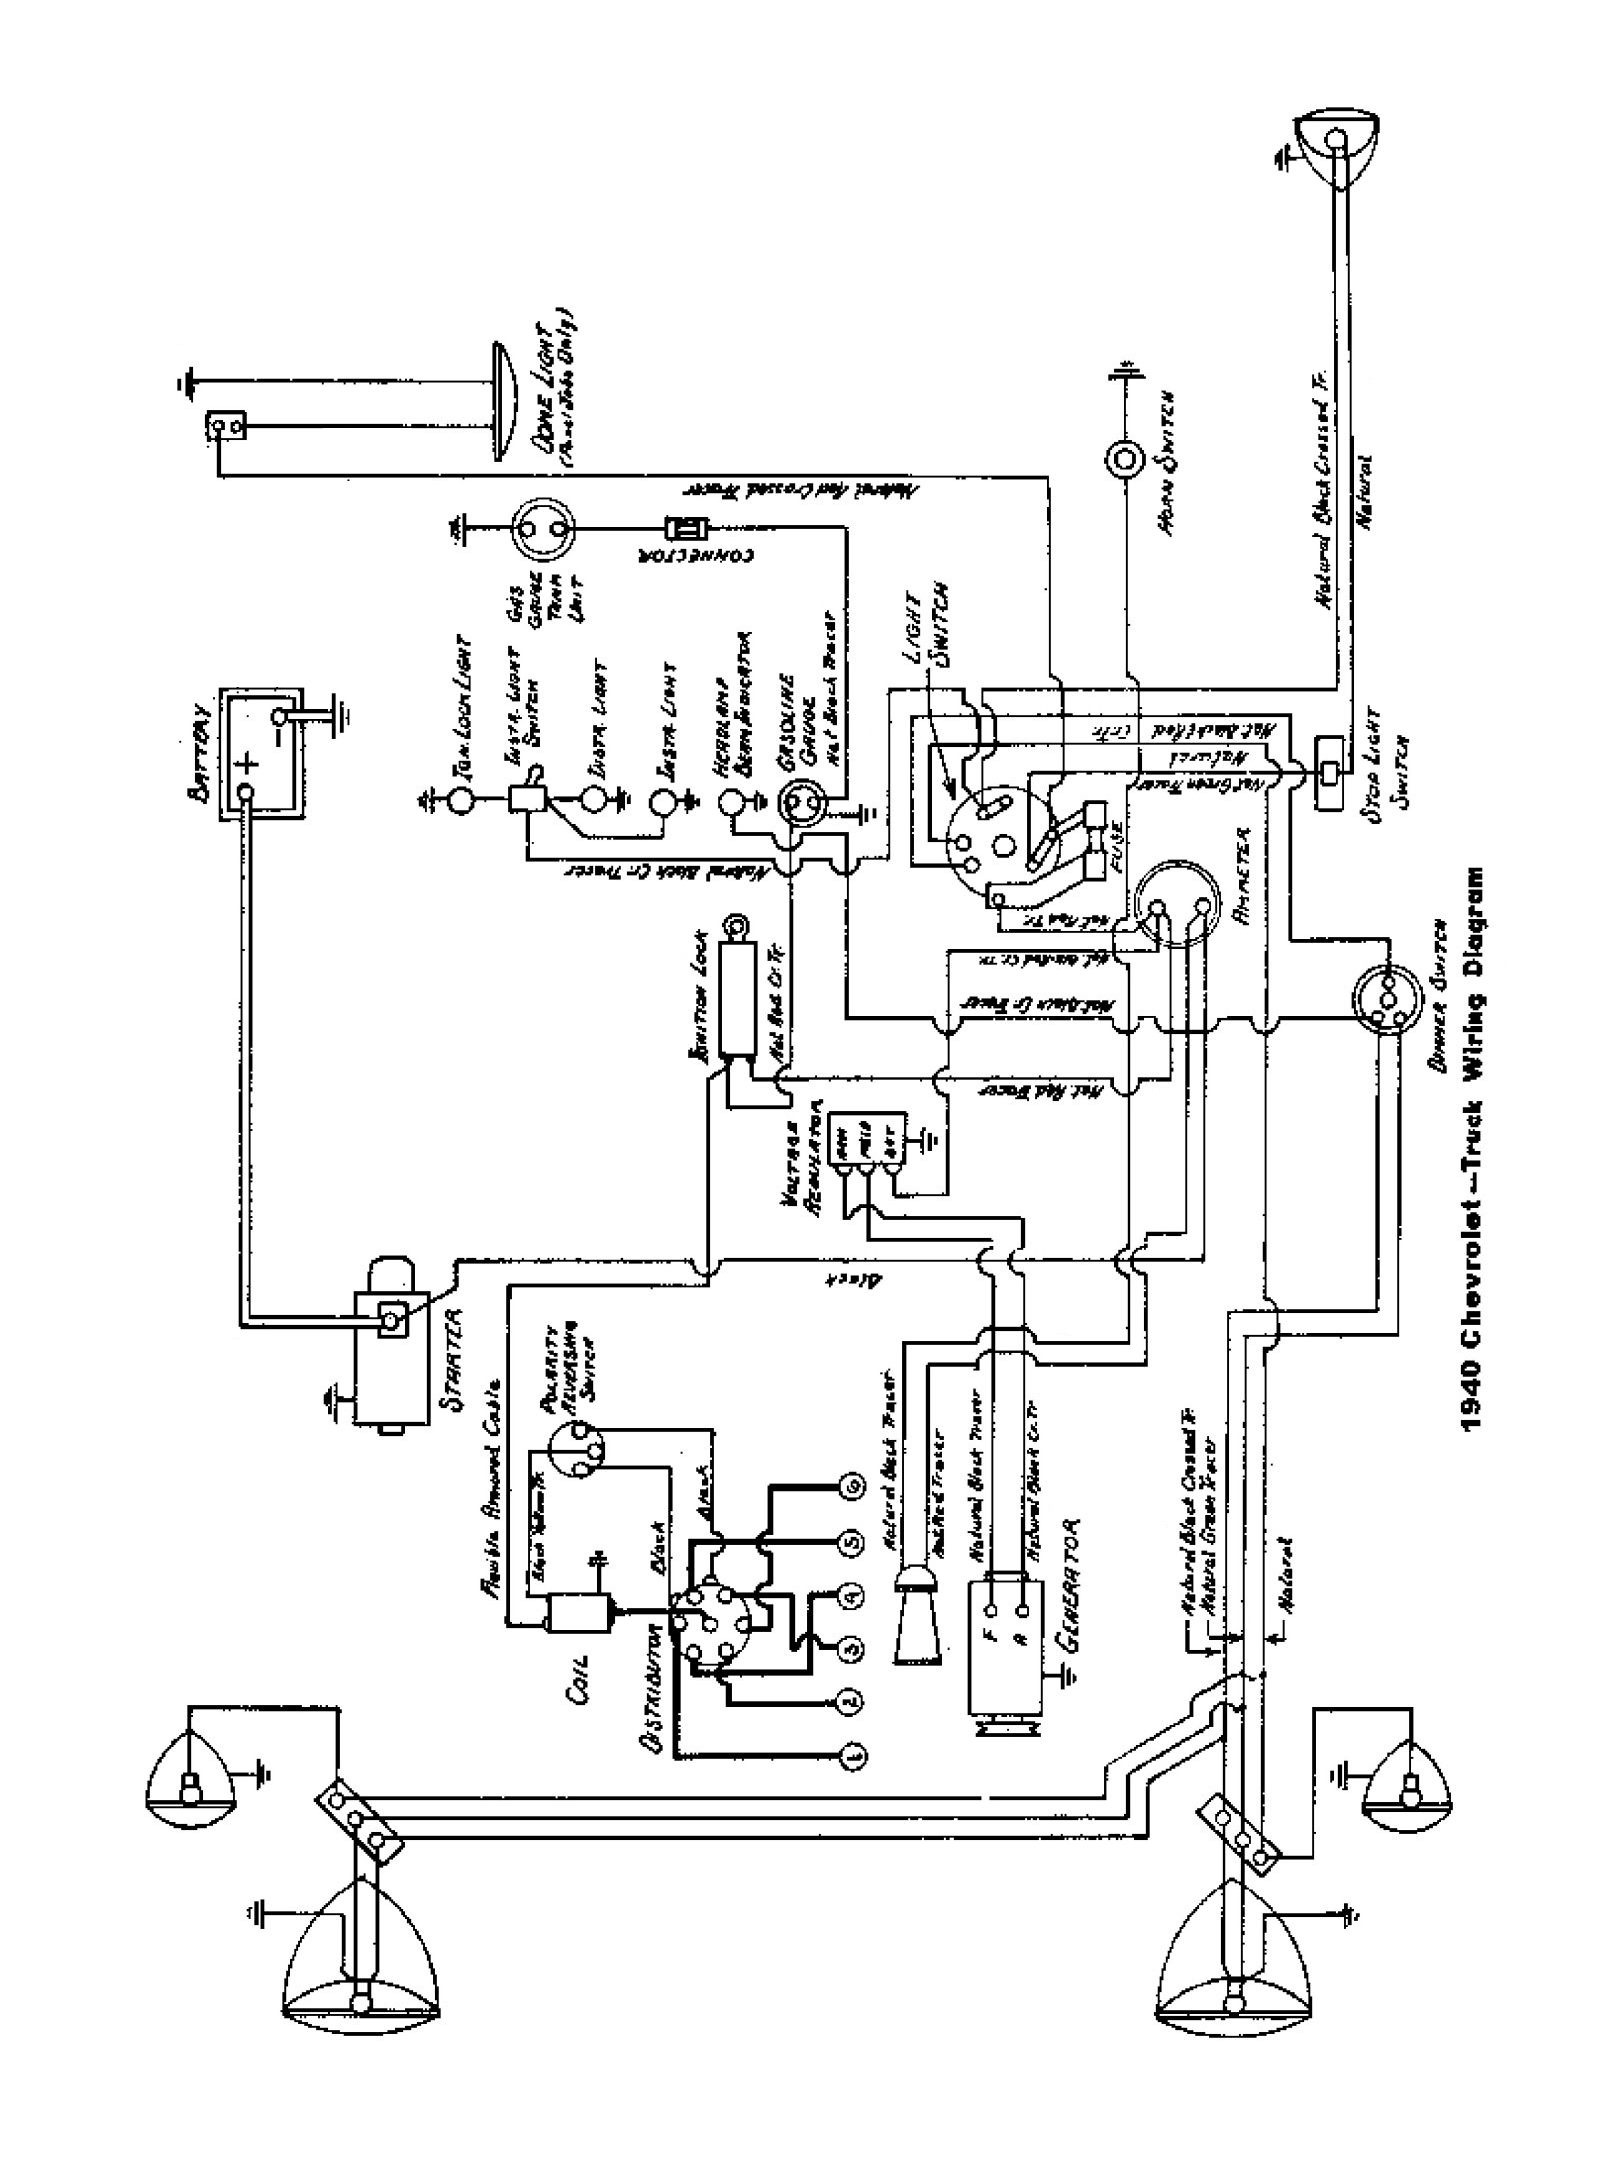 Chevy V8 Wiring Diagram Great Installation Of 1977 Ignition Schematic Images Gallery